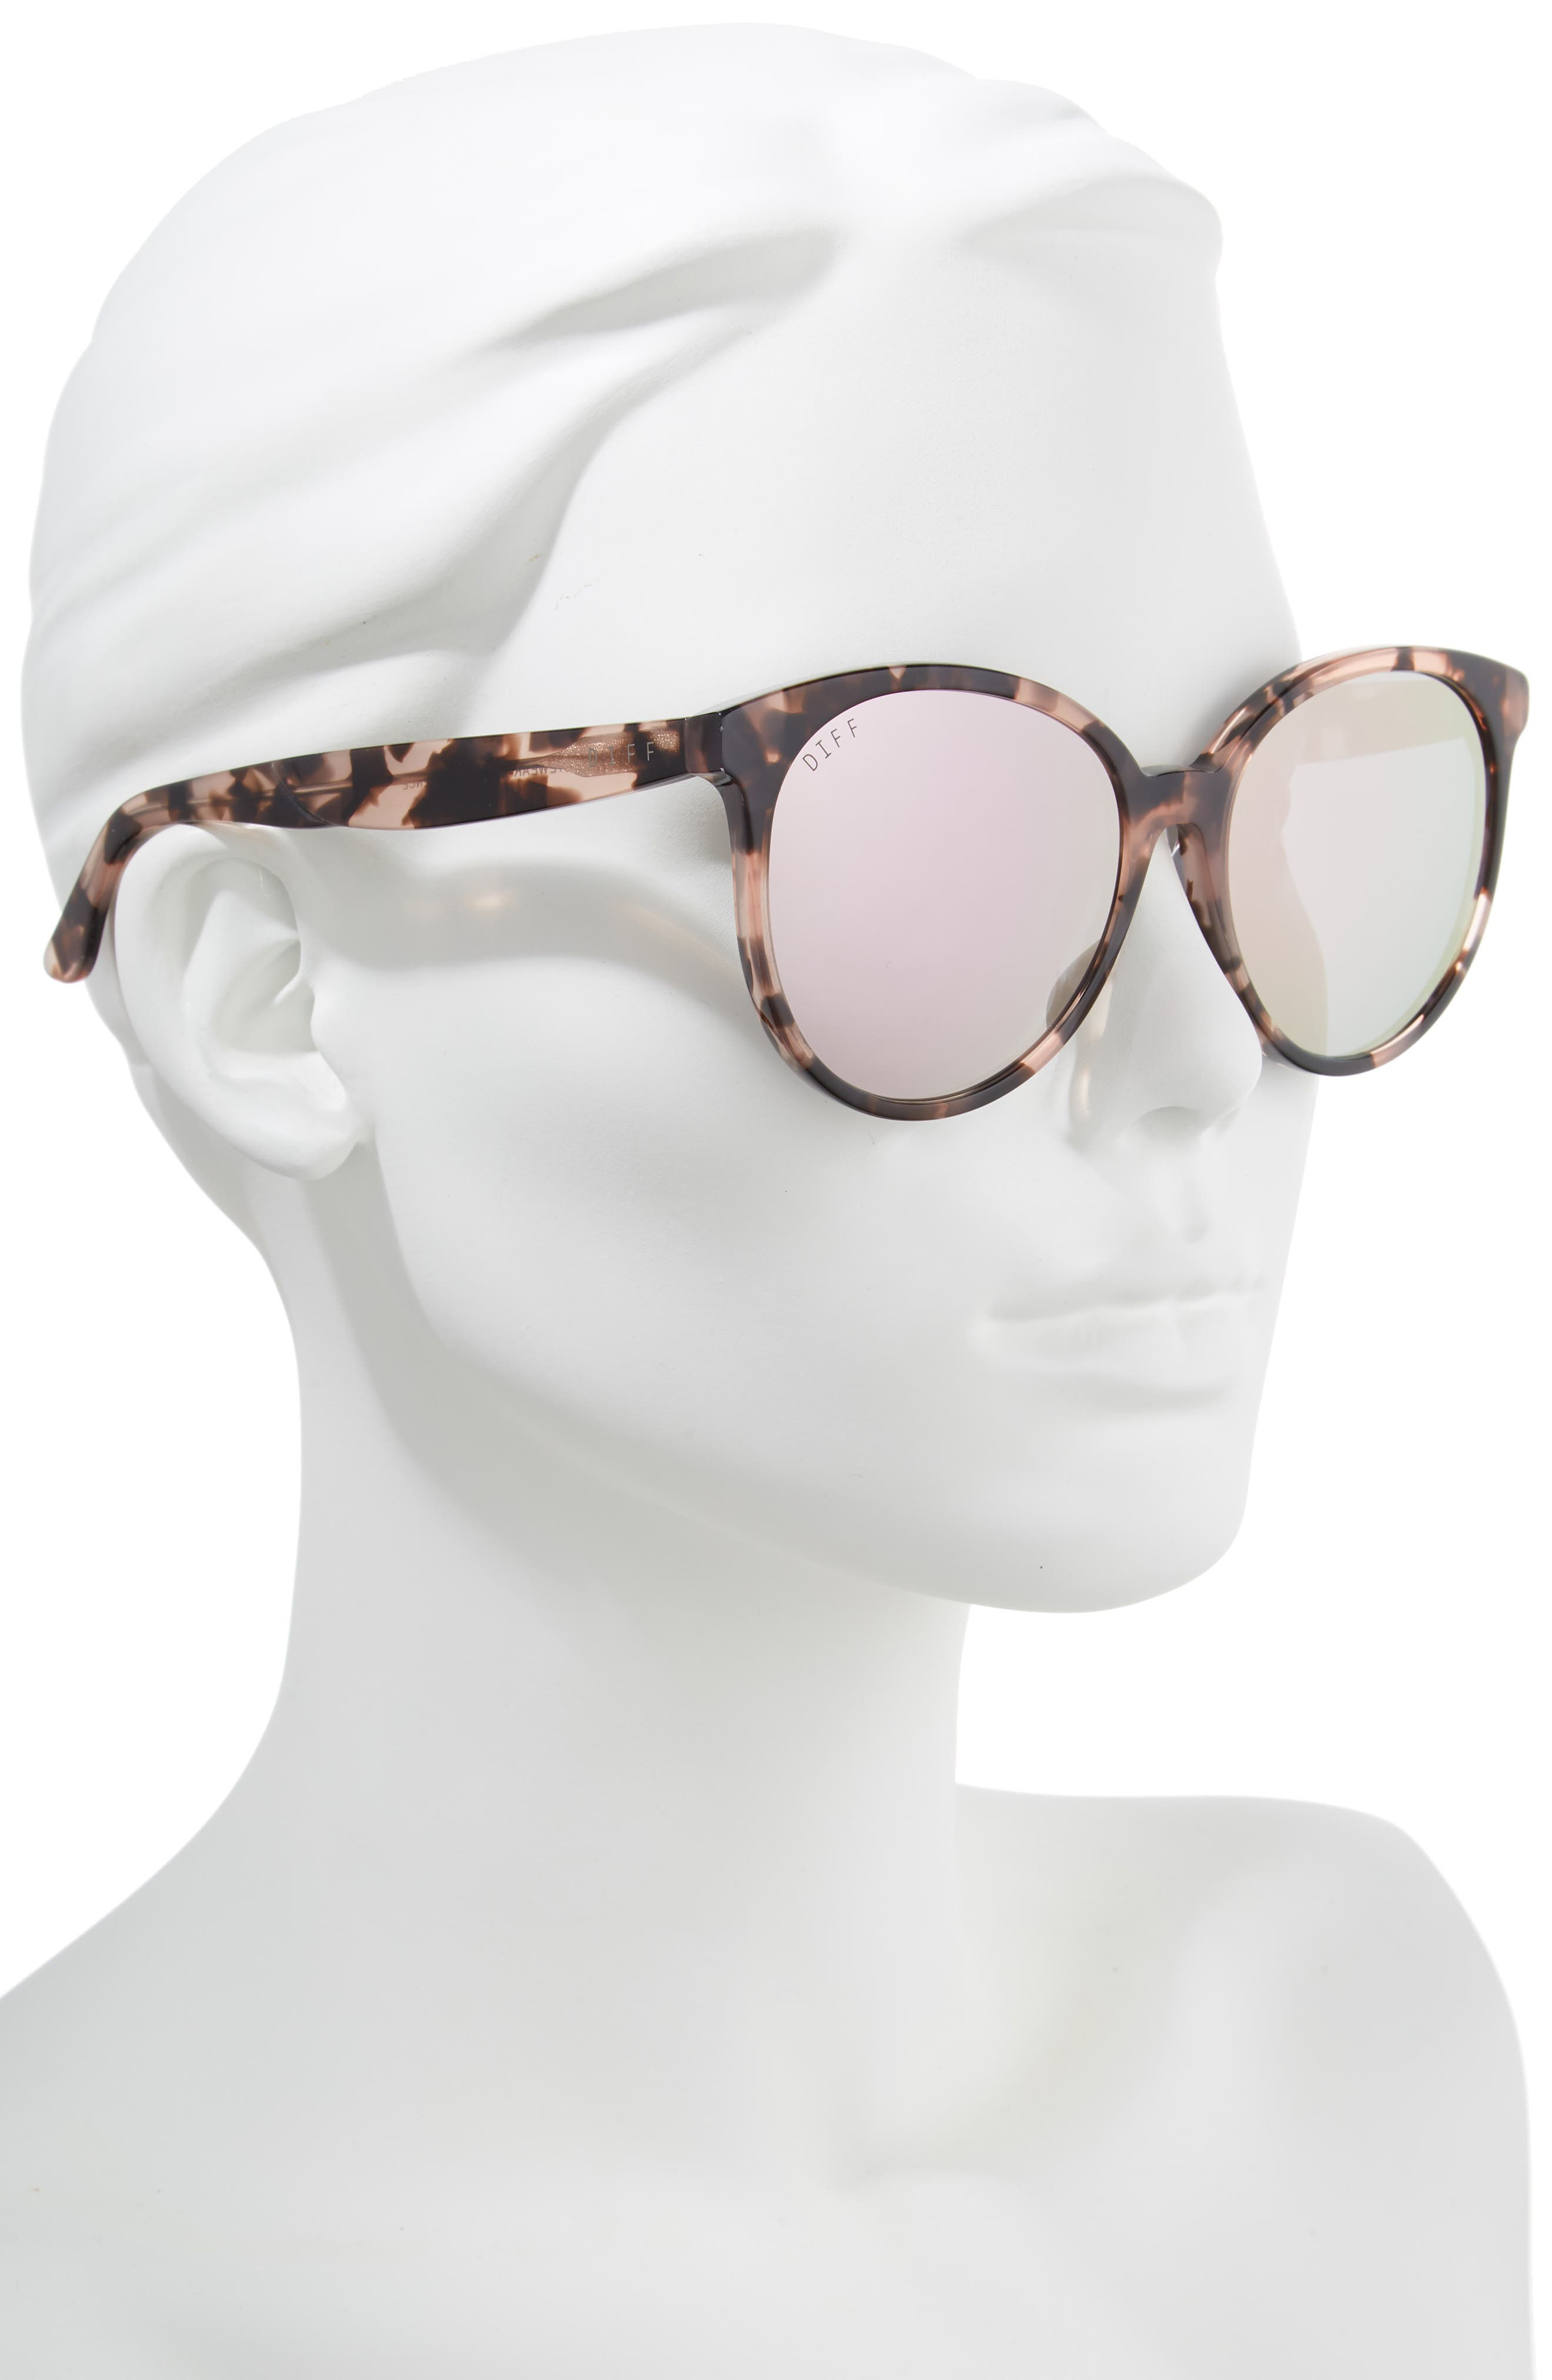 Cosmo 56mm Polarized Round Sunglasses,                             Alternate thumbnail 2, color,                             HIMALAYAN TORTOISE/ TAUPE